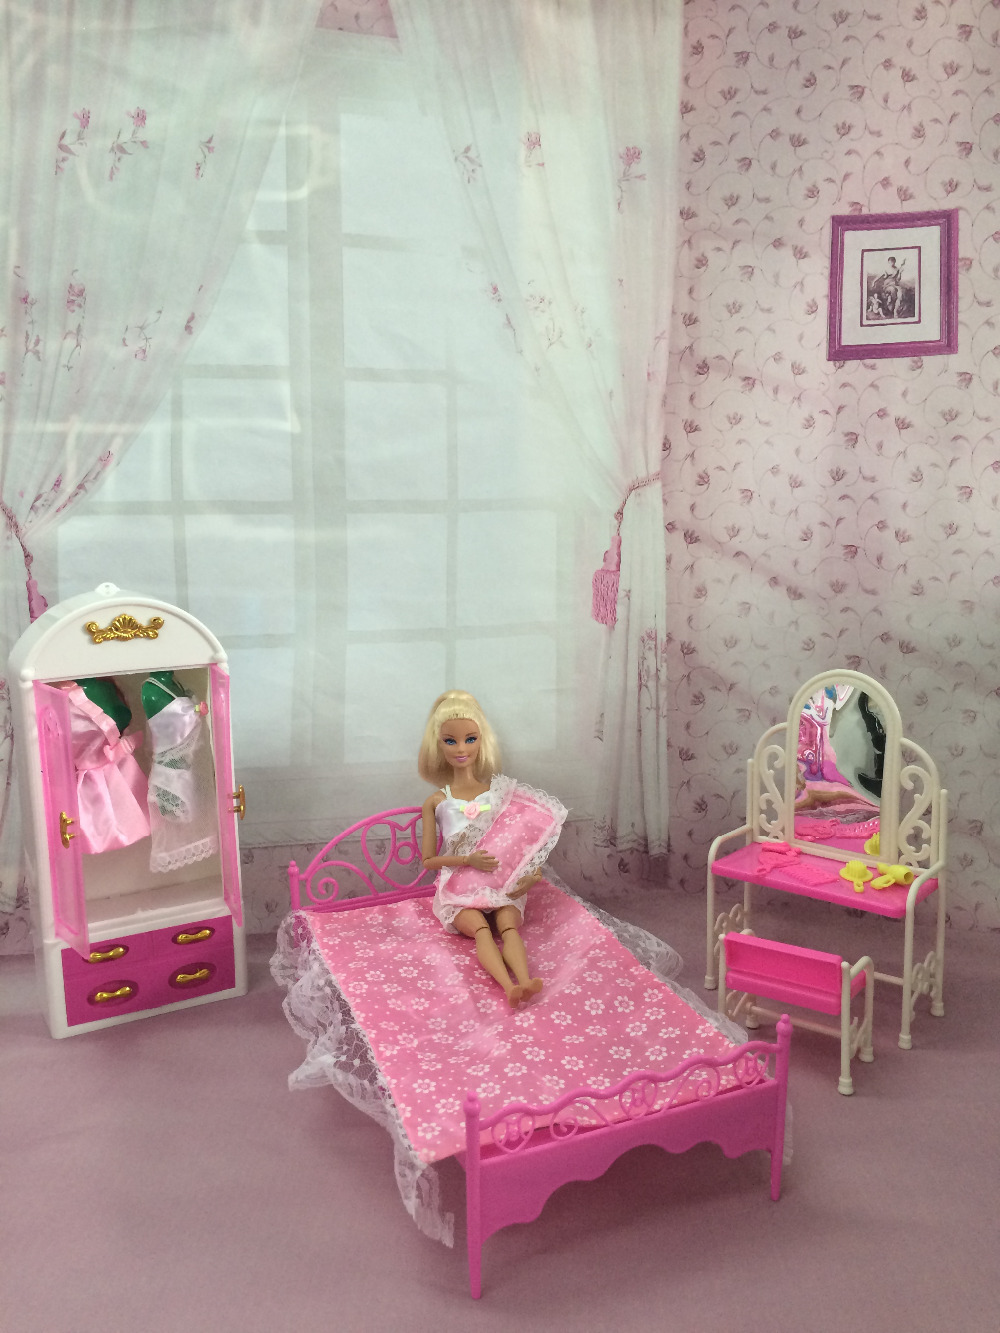 Free Shipping One Set Doll Furniture Wardrobe+ Dresser +Chair + Bed+Pillows Accessories For Barbie Doll Girl Play House Baby Toy